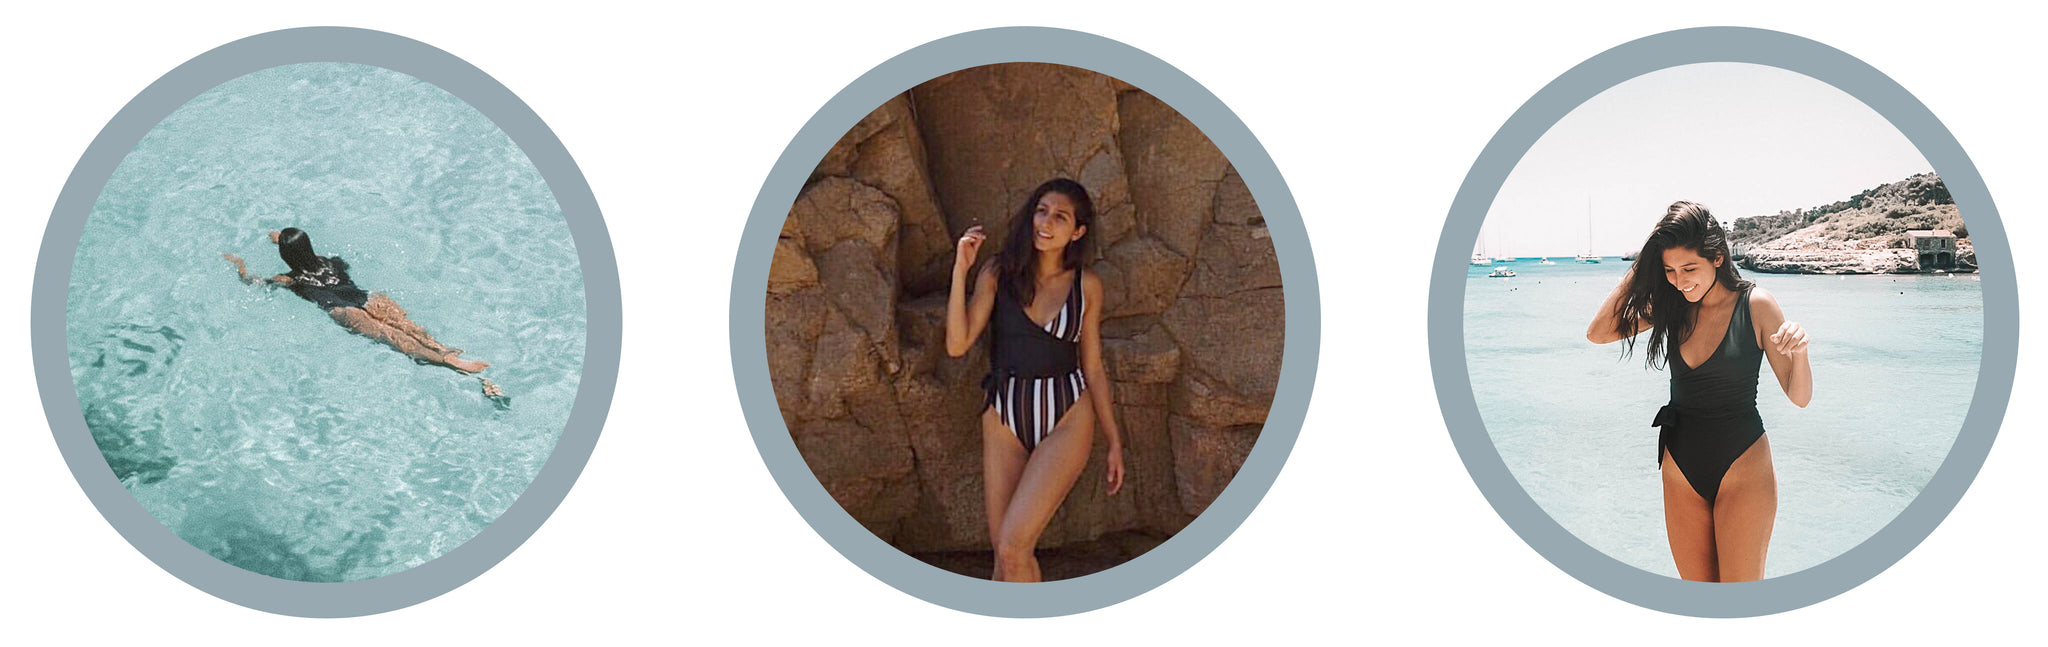 fairtrade ethical sustainable swimwear